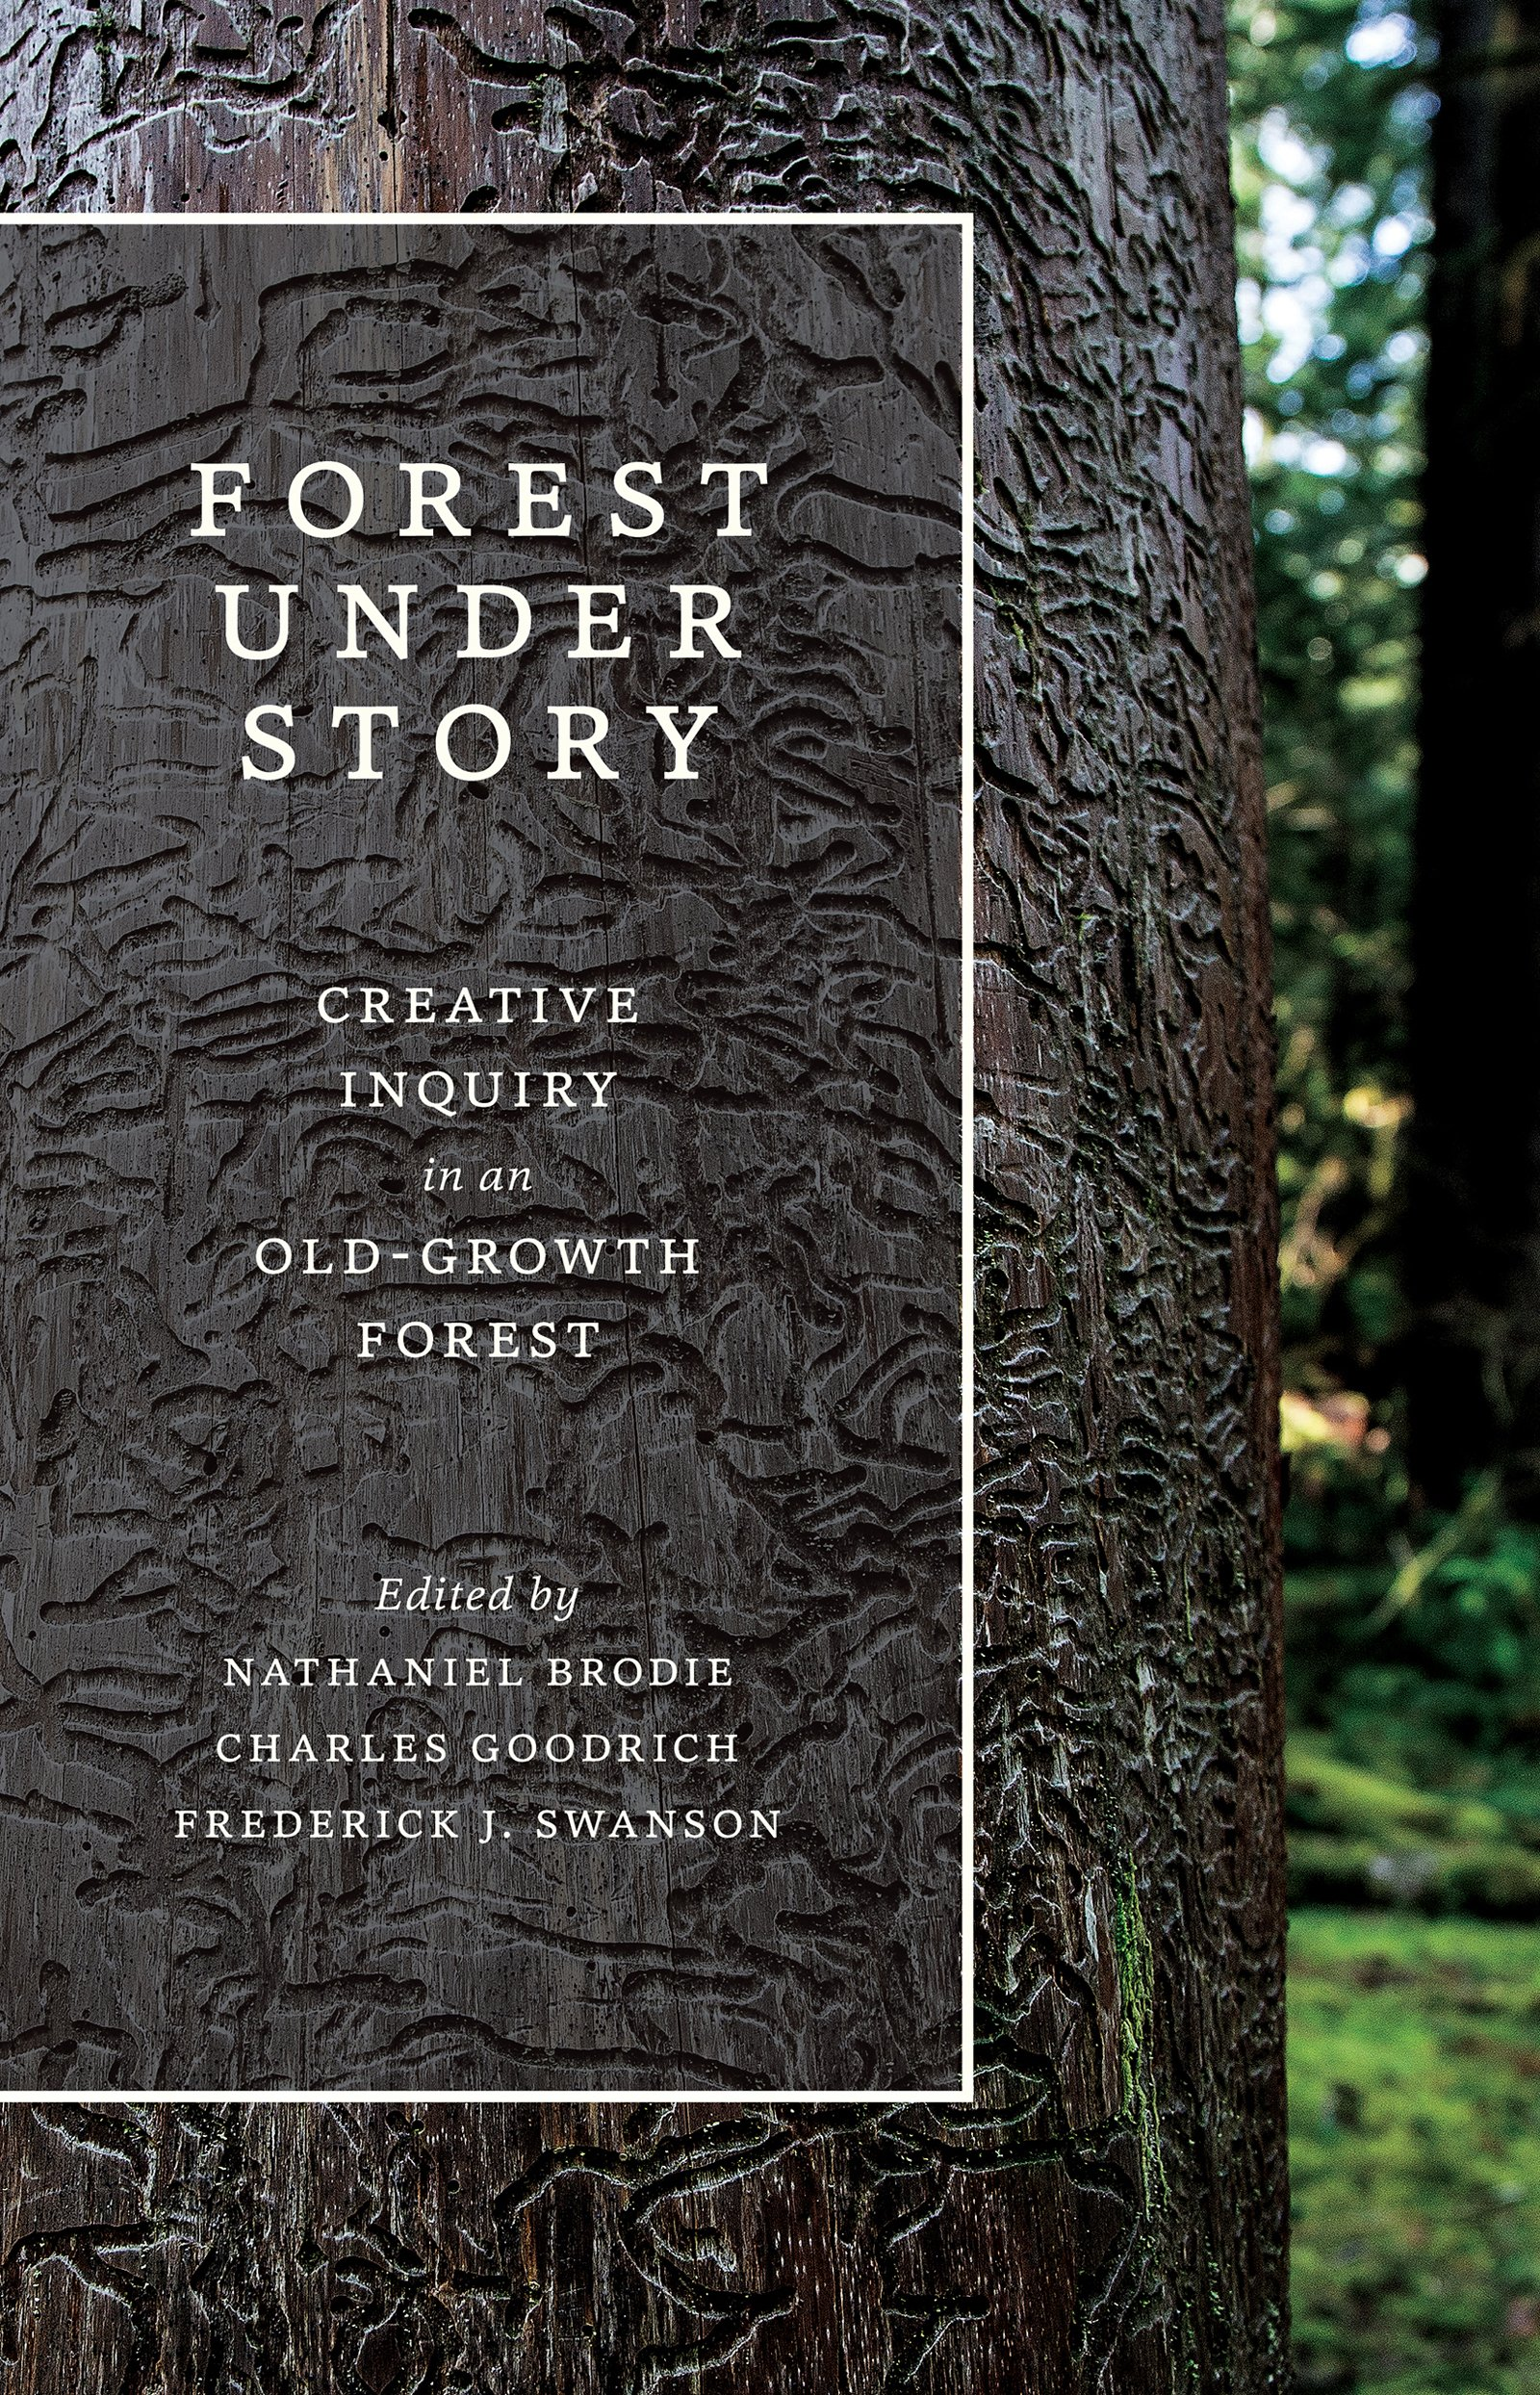 Download Forest Under Story: Creative Inquiry in an Old-Growth Forest (Ruth Kirk Book Fund) PDF